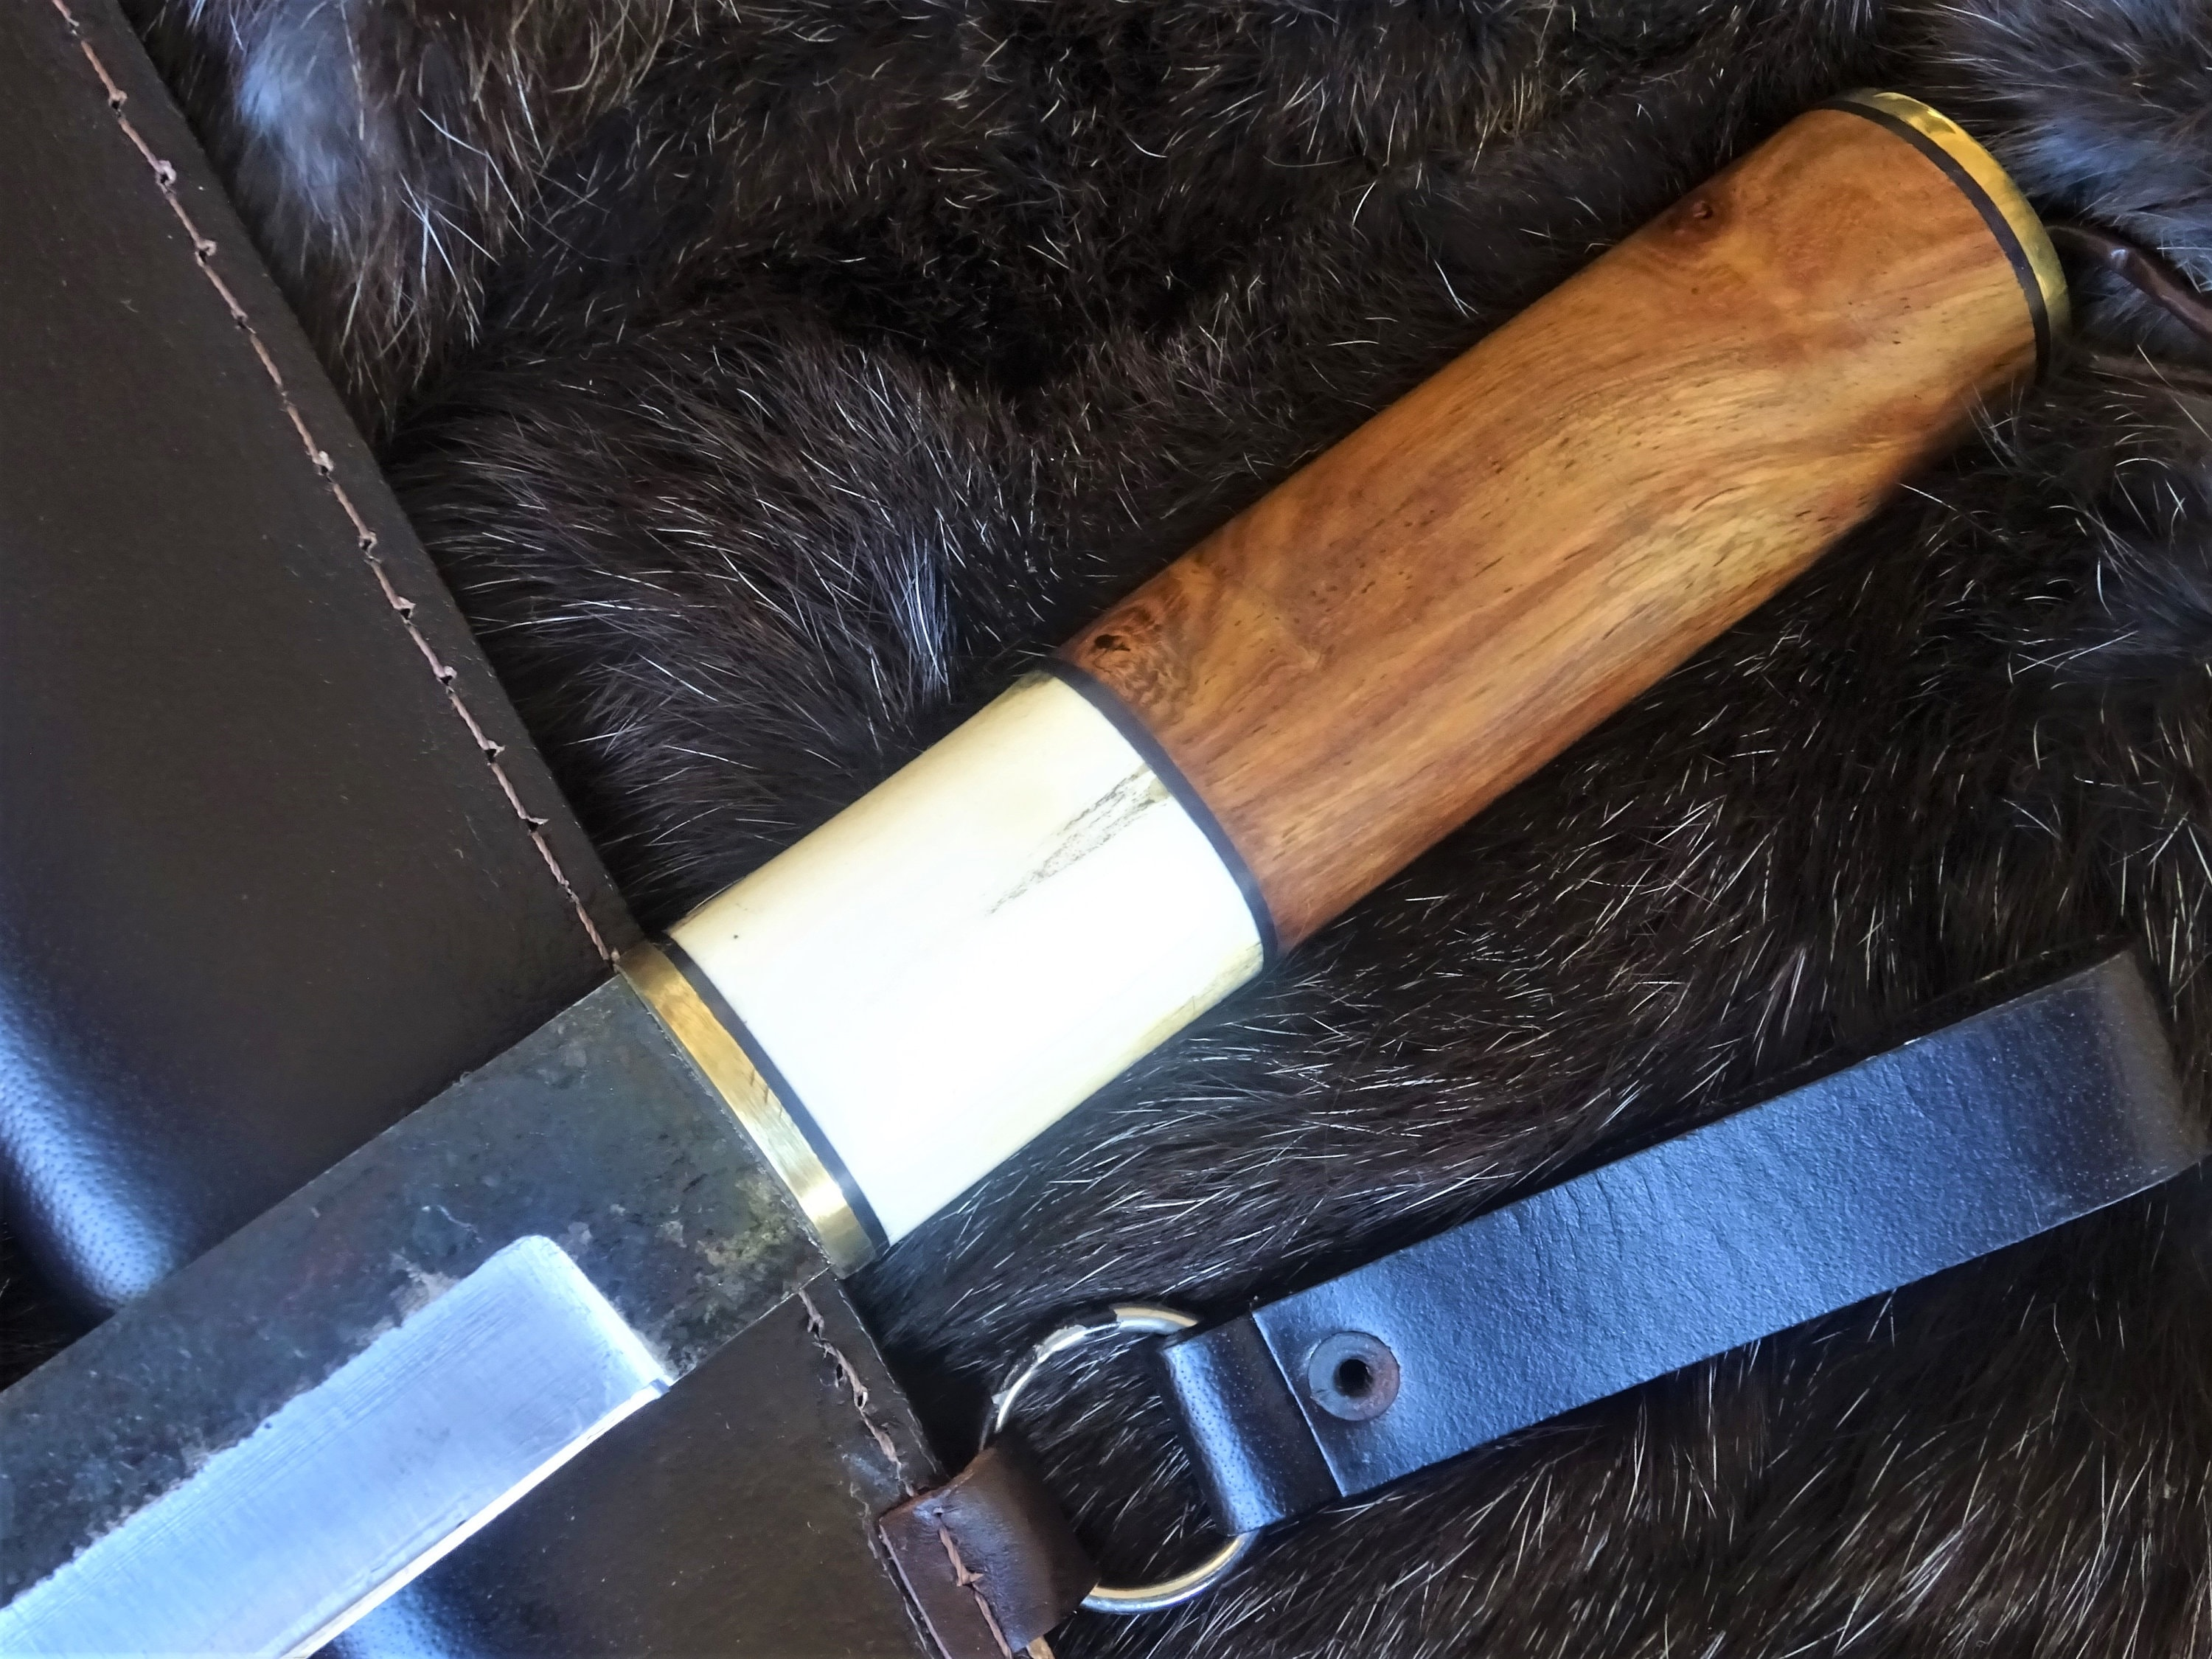 Large sax knife with sharp blade and fine handle 45 cm